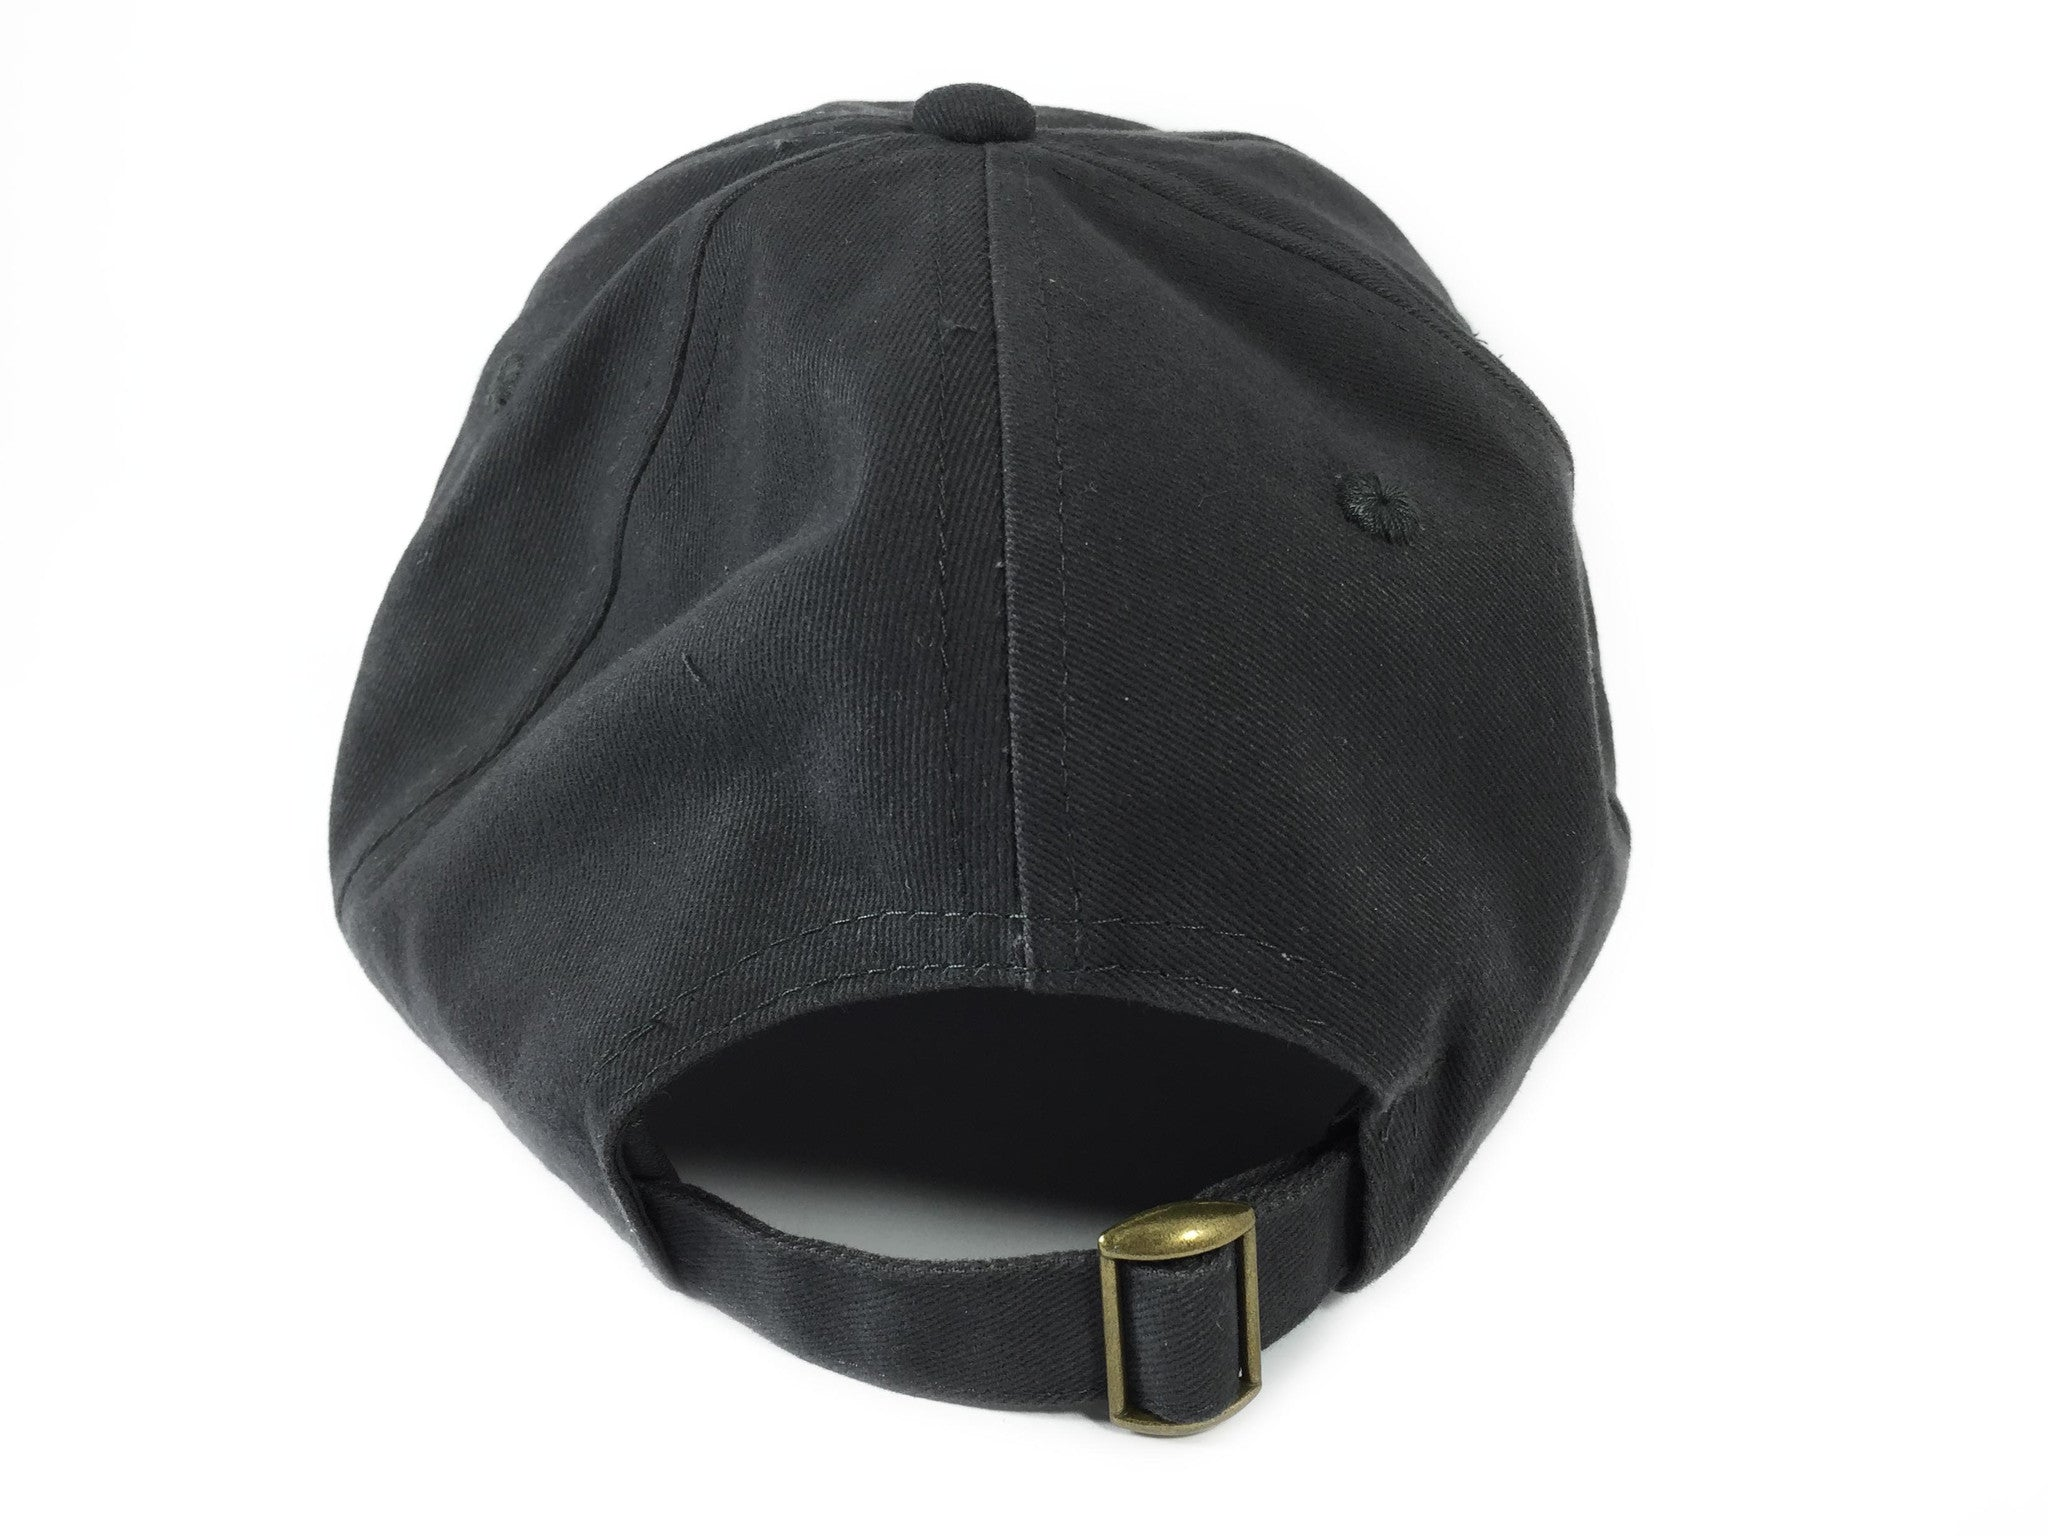 Handground Brushed Cotton Hat